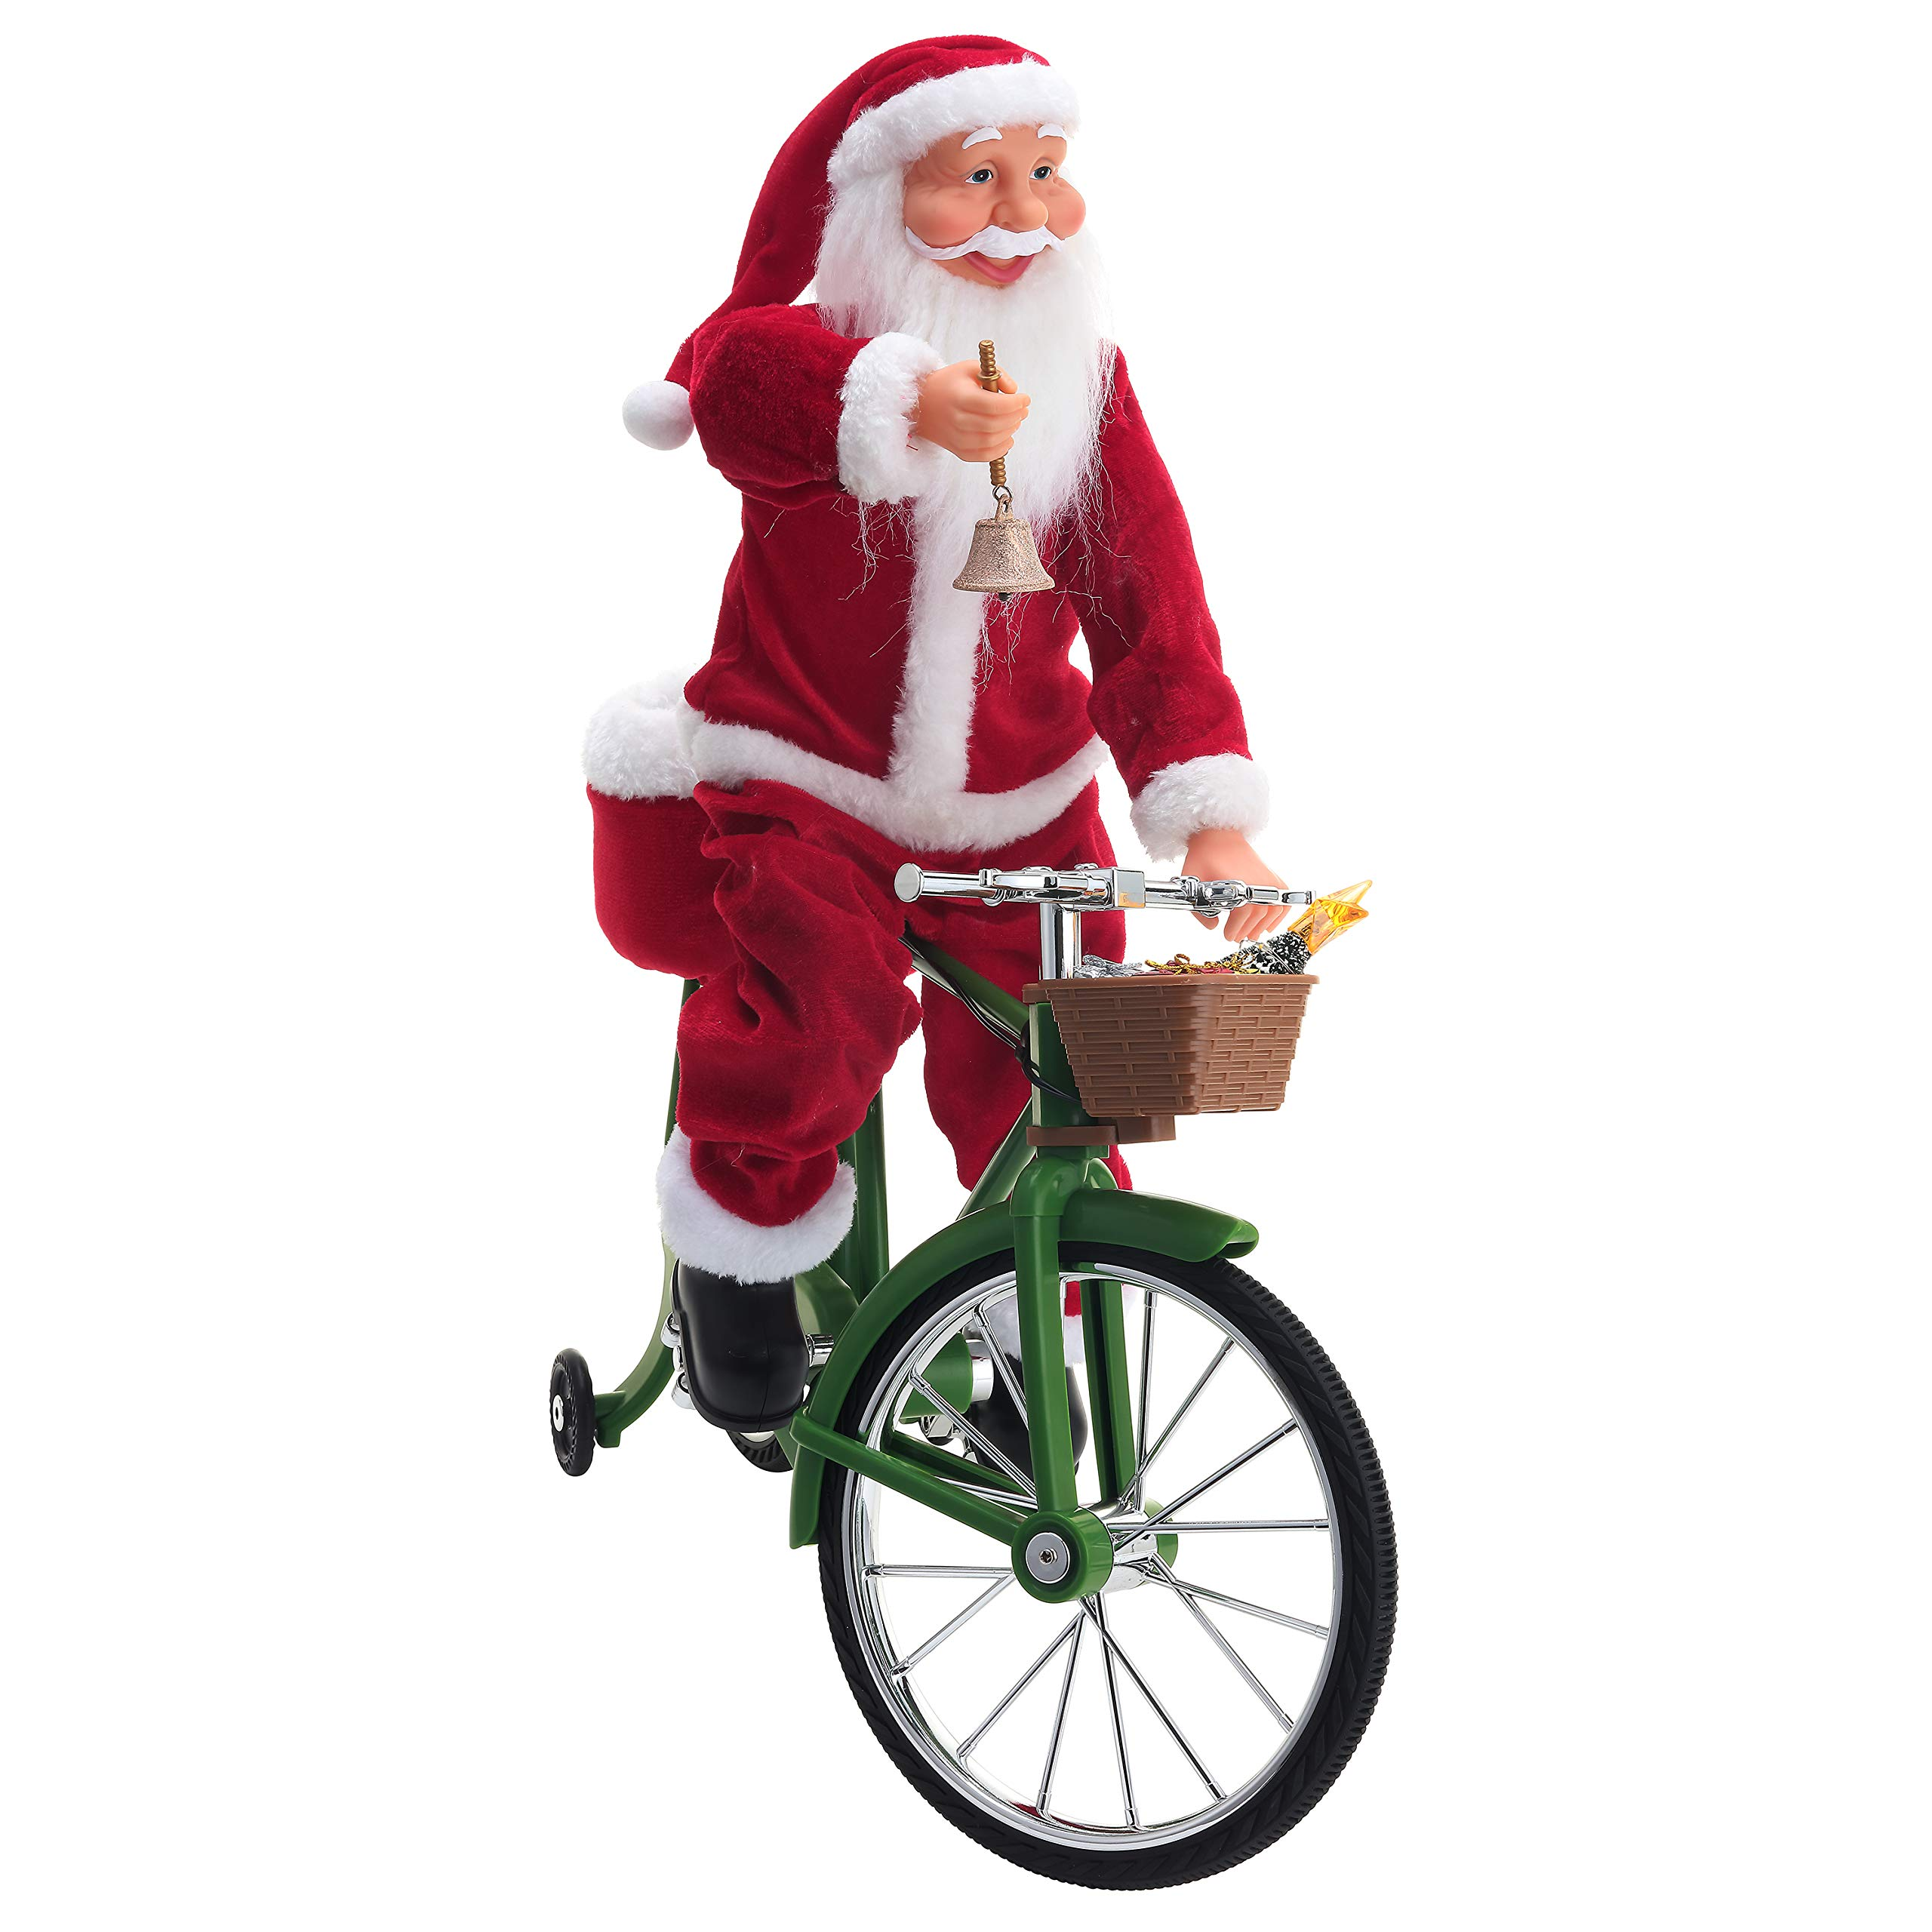 Mr. Christmas 30482 Cycling Santa Holiday Decoration, One Size, Multi by Mr. Christmas